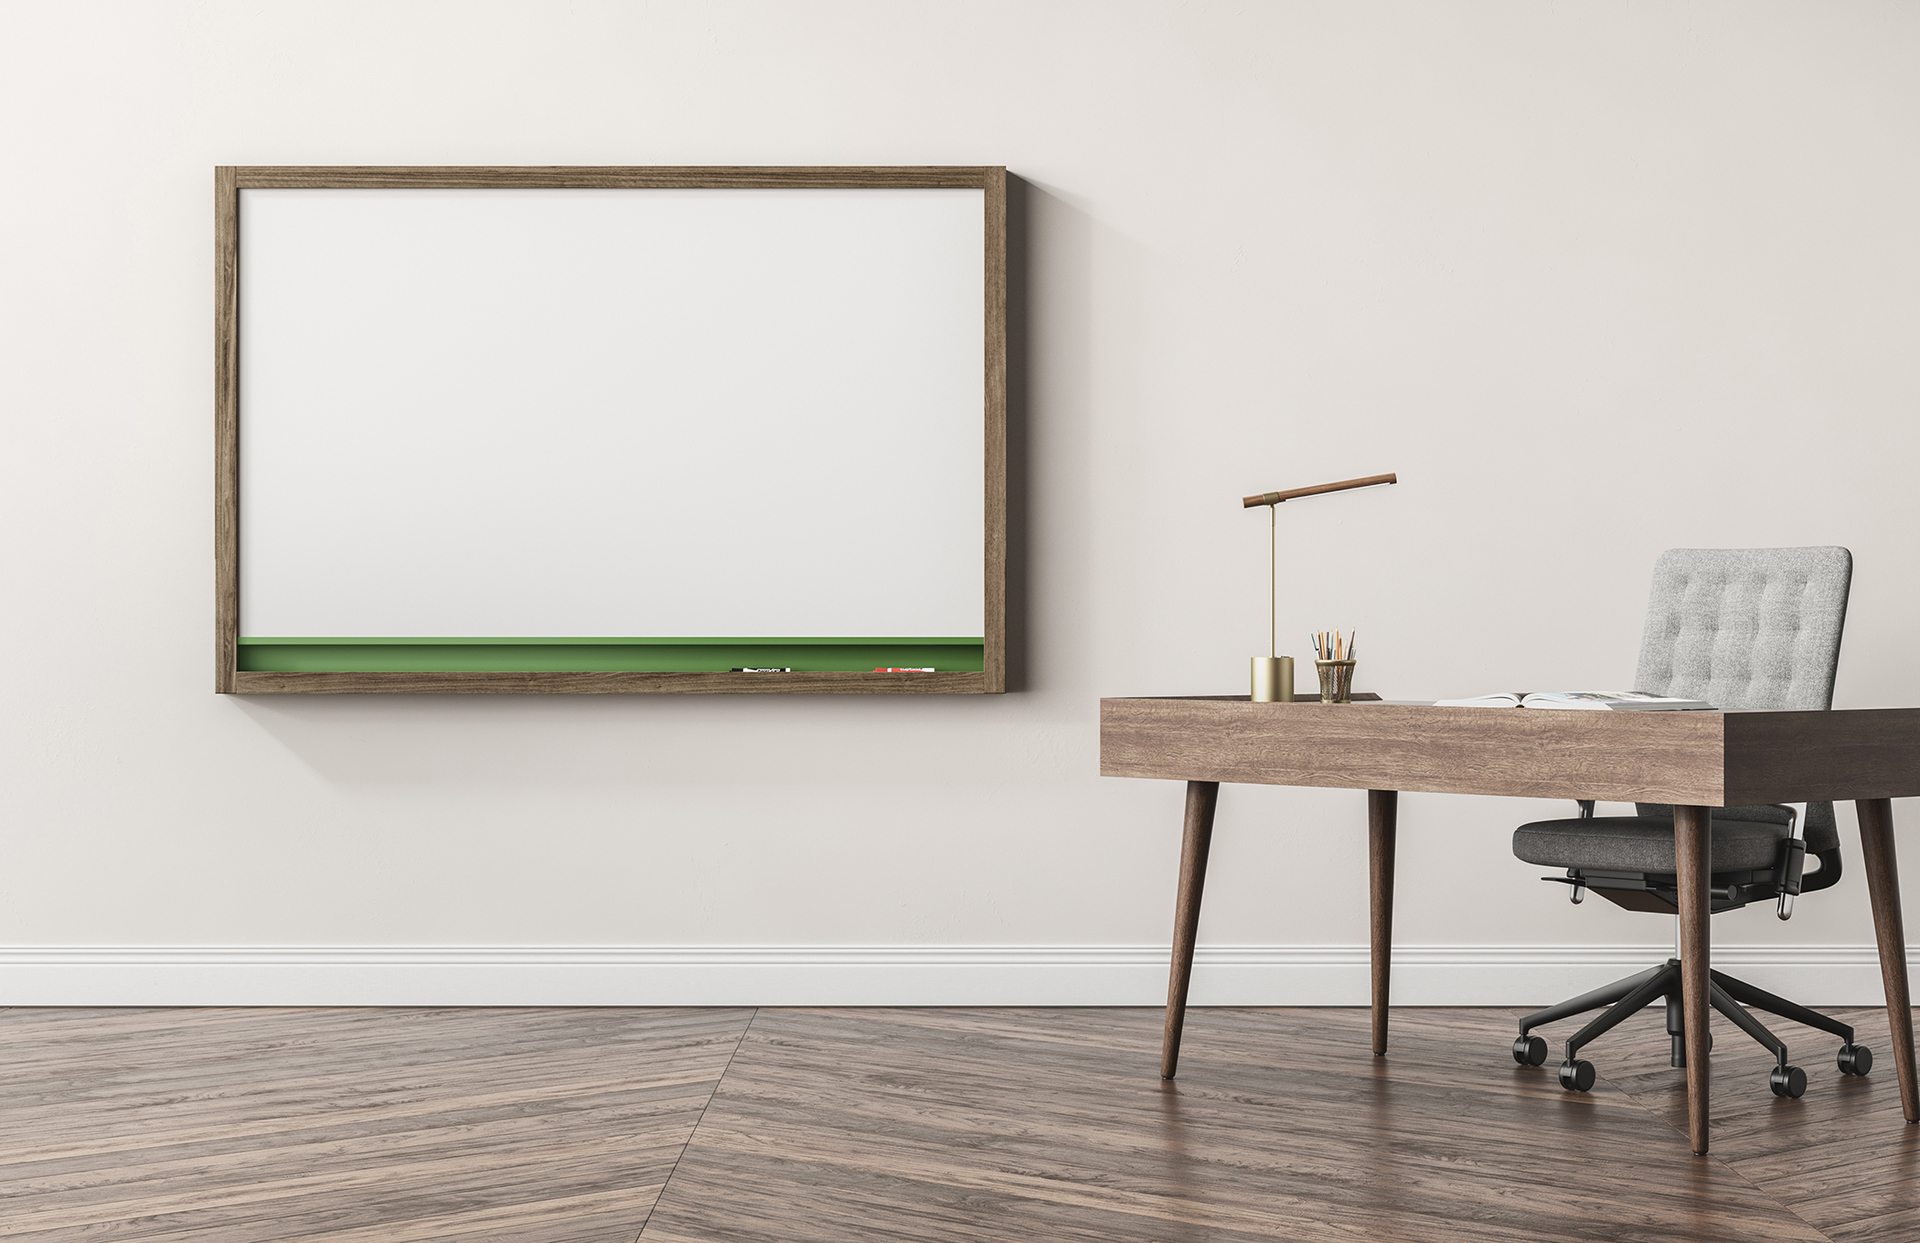 In Claridge's new MIX line of highly customizable, mixed-material dry erase markerboards and tackboards, those who design for collaborative communication environments now have more flexibility to achieve their desired aesthetic.